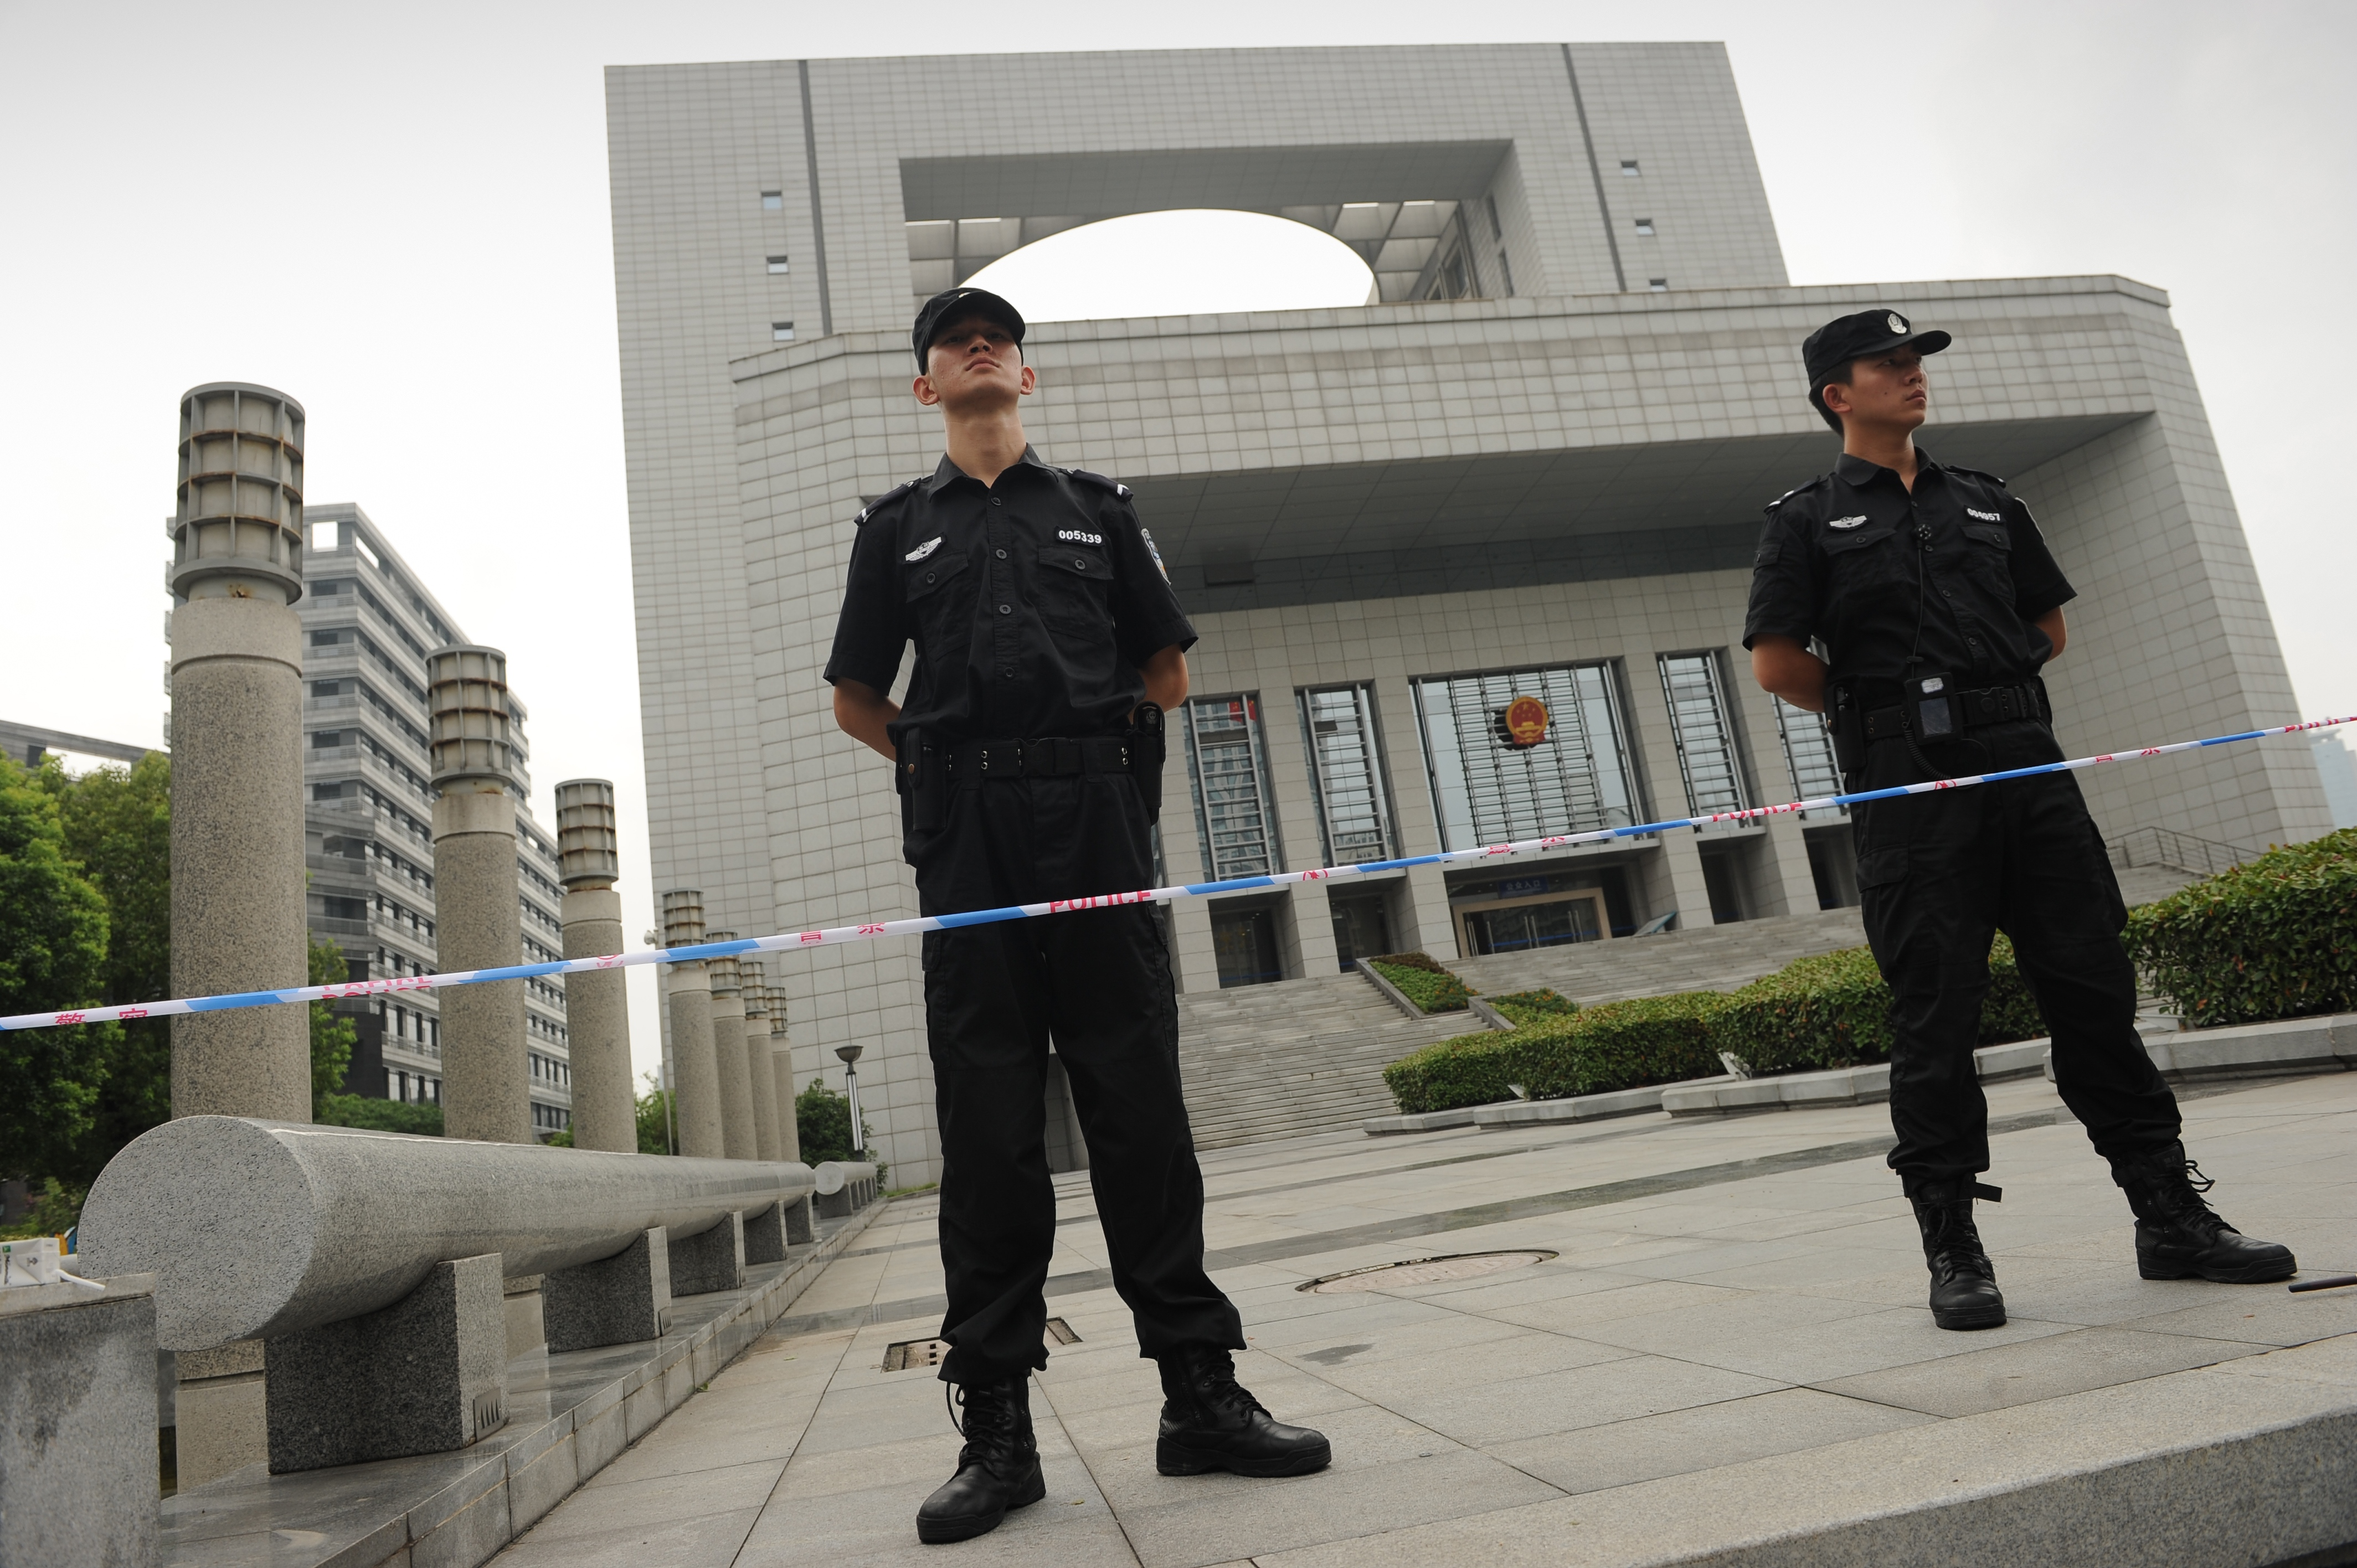 Chinese Rights Lawyer, Missing for 6 Months, Suddenly Makes Publicized Confession